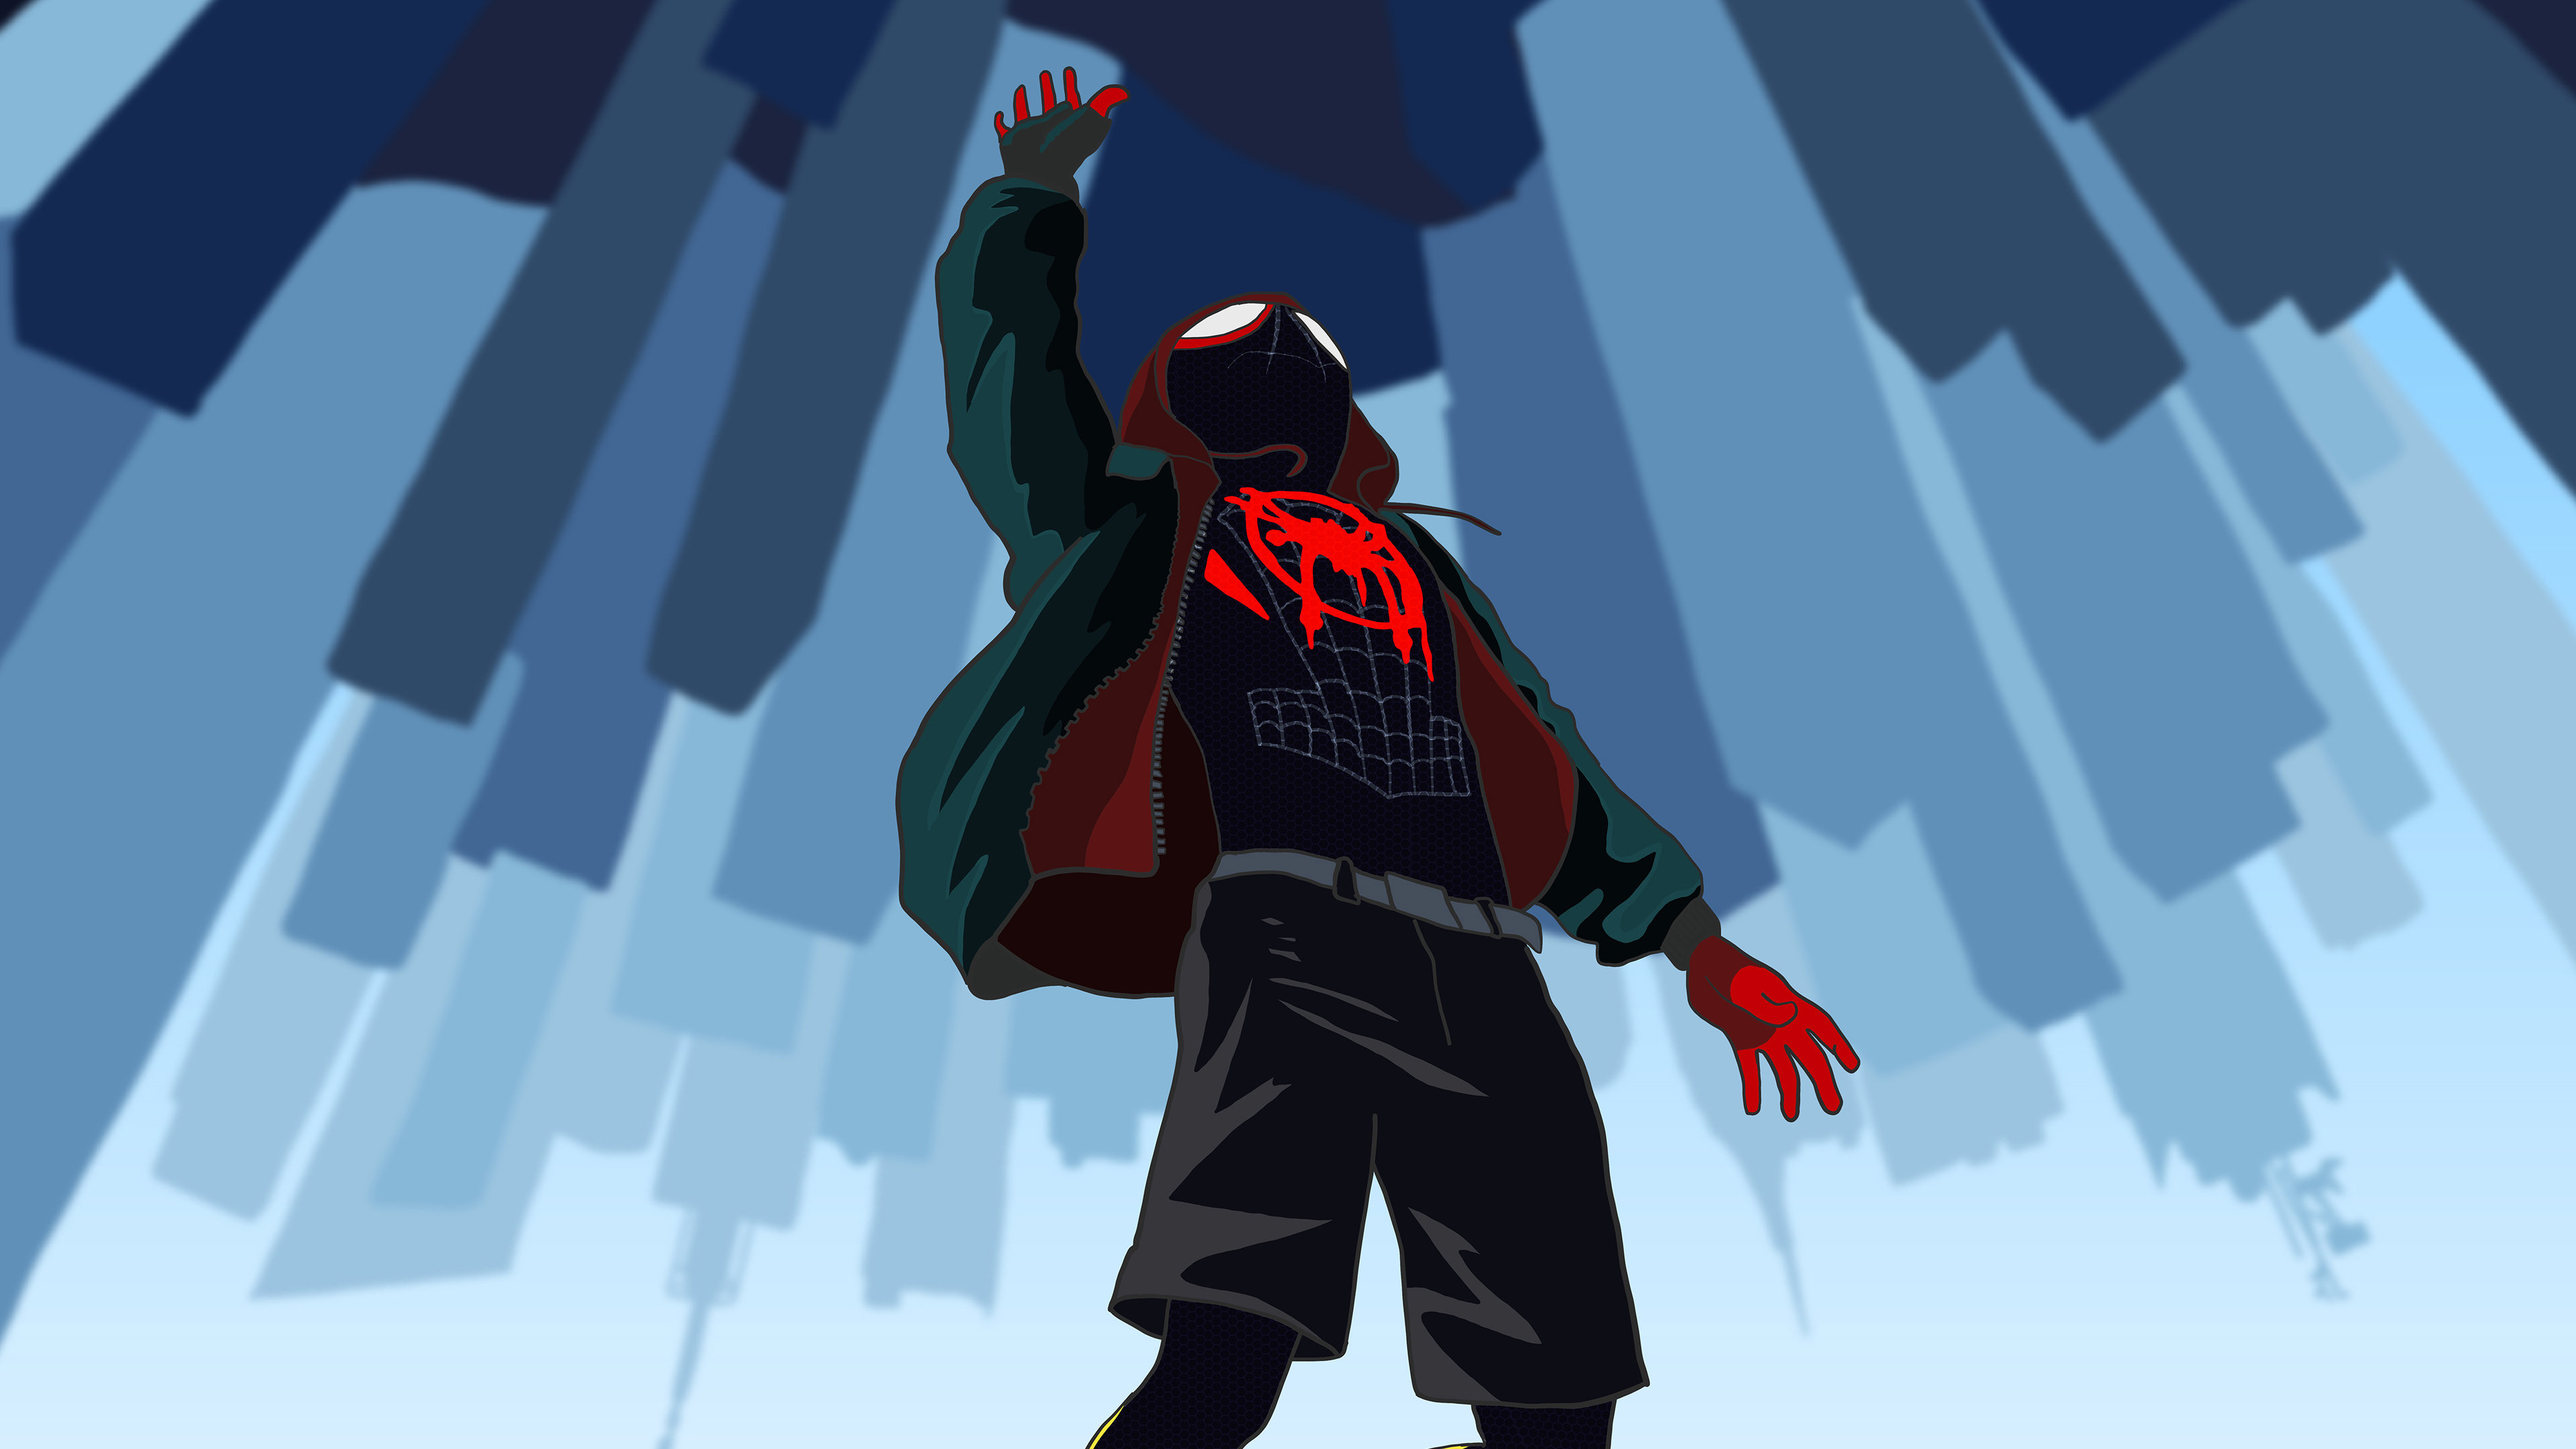 spiderman man verse 4k 1543620261 - Spiderman Man Verse 4k - superheroes wallpapers, spiderman into the spider verse wallpapers, hd-wallpapers, digital art wallpapers, behance wallpapers, artwork wallpapers, artist wallpapers, 4k-wallpapers